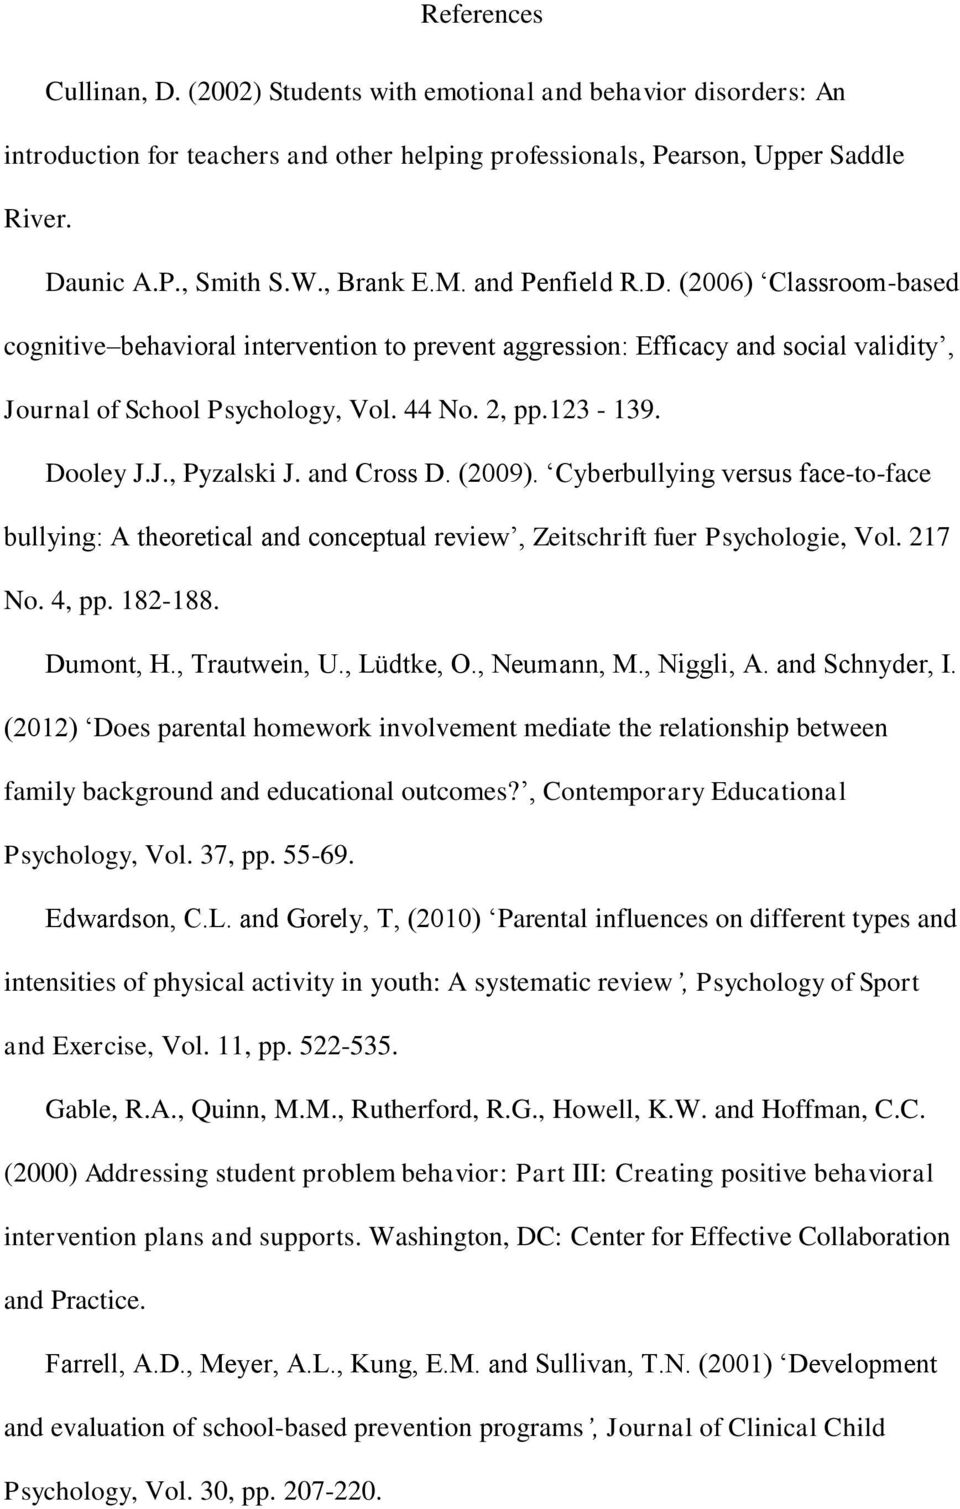 Dooley J.J., Pyzalski J. and Cross D. (2009). Cyberbullying versus face-to-face bullying: A theoretical and conceptual review, Zeitschrift fuer Psychologie, Vol. 217 No. 4, pp. 182-188. Dumont, H.